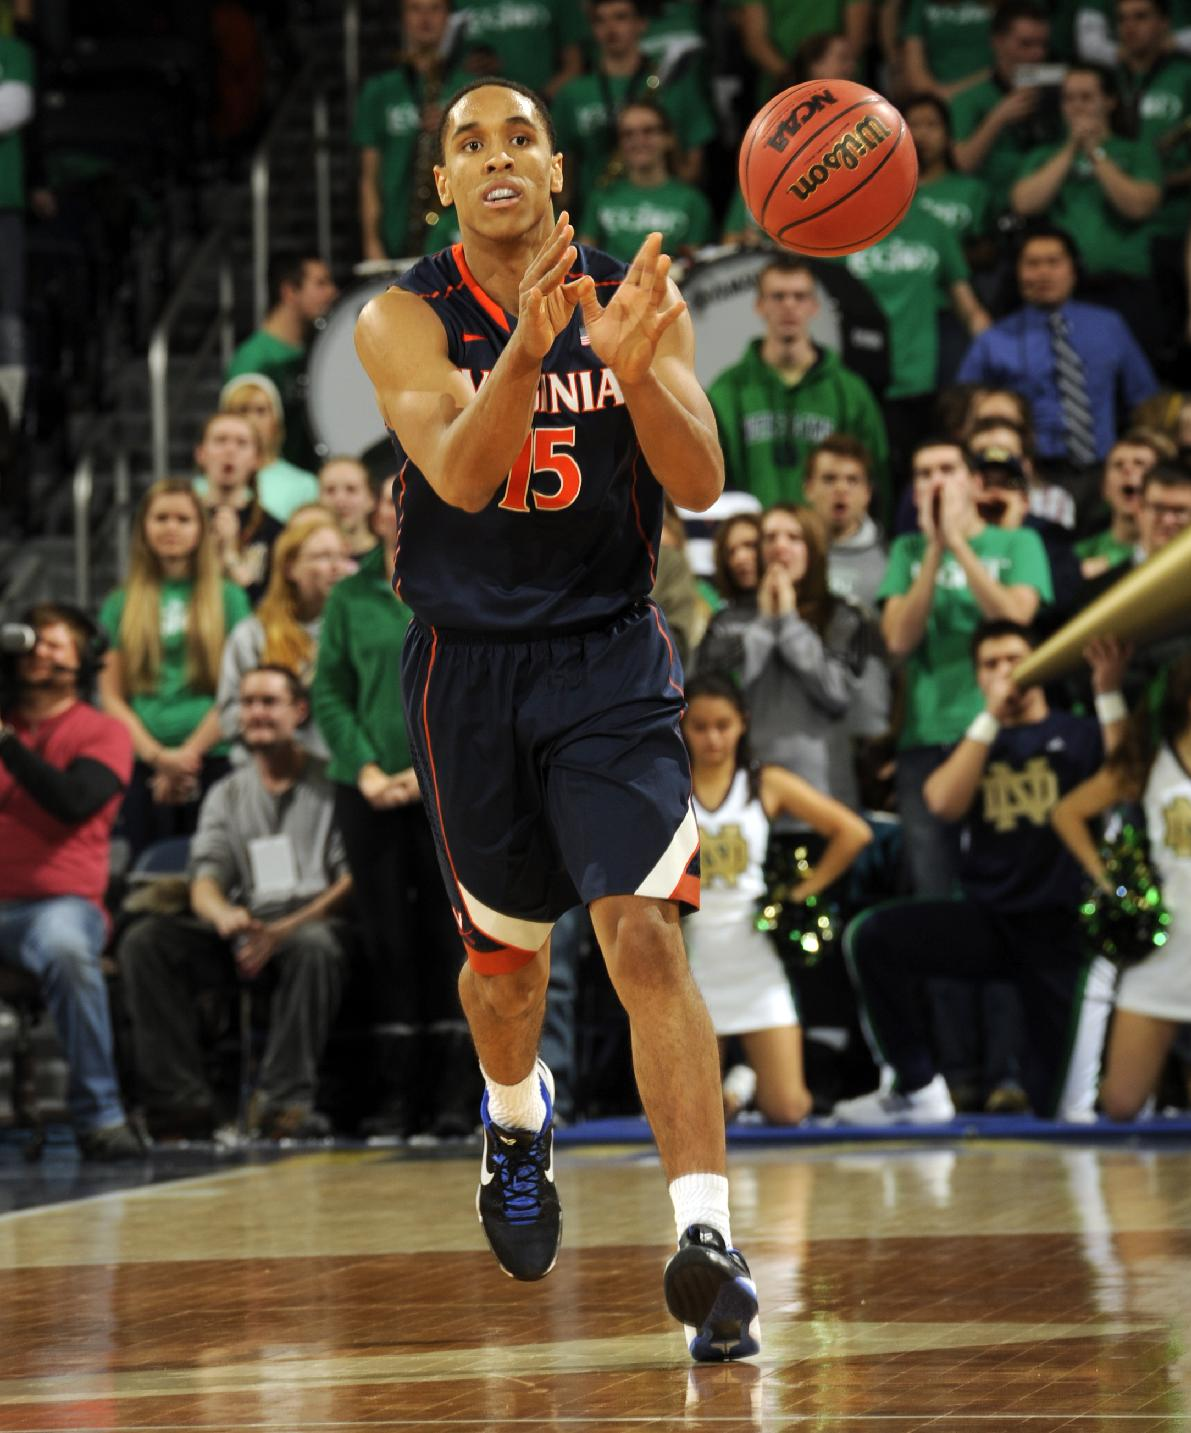 Virginia guard Malcolm Brogdon passes the ball during the first half of a, NCAA college basketball game against Notre Dame, Tuesday, Jan. 28, 2014, in South Bend, Ind